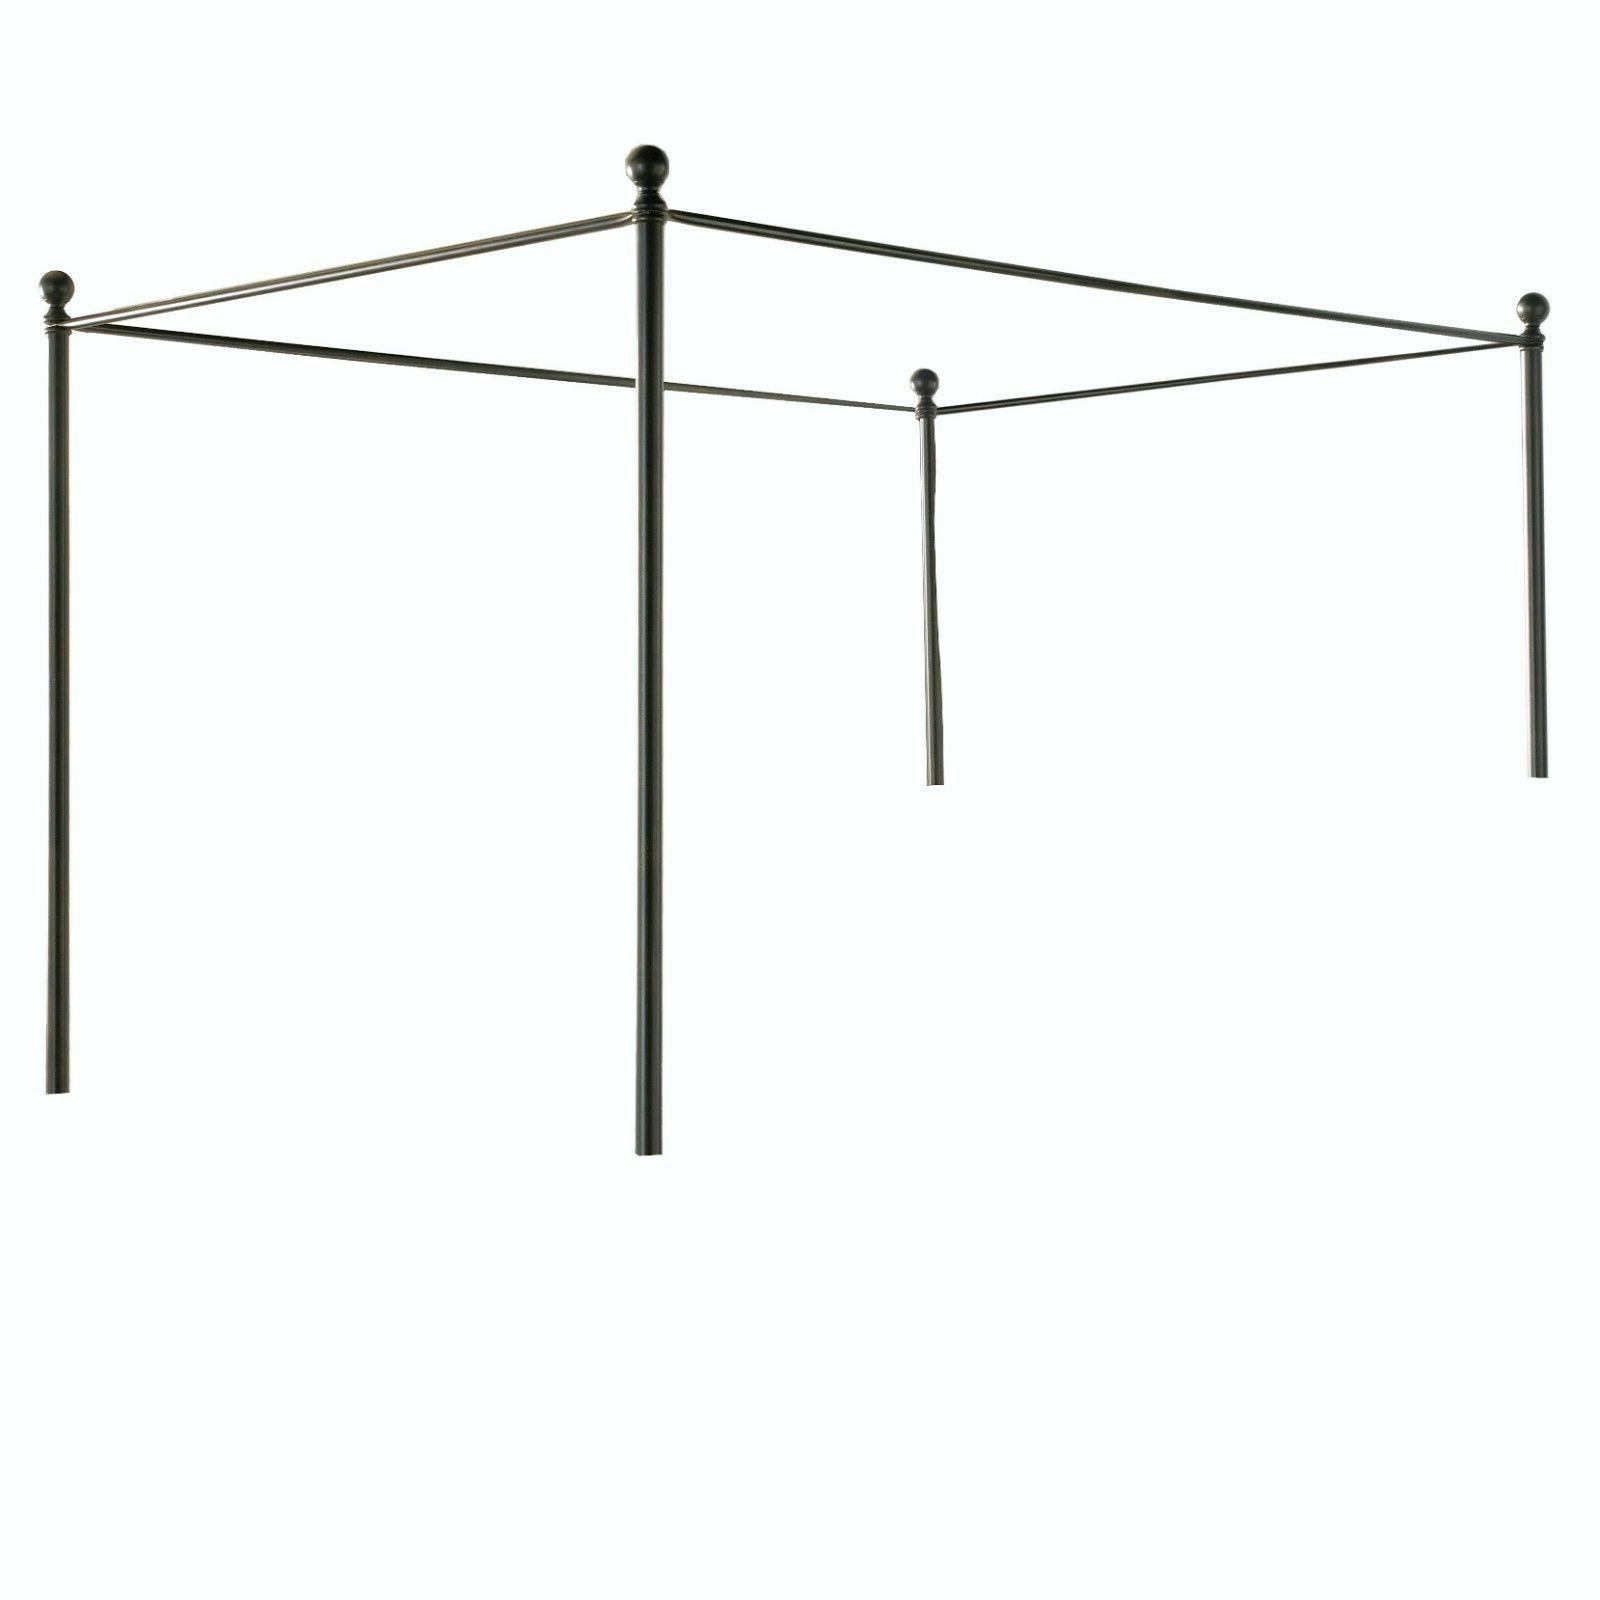 Over Bed Canopy For Boys Women Kids Overhead Kit Best Rated